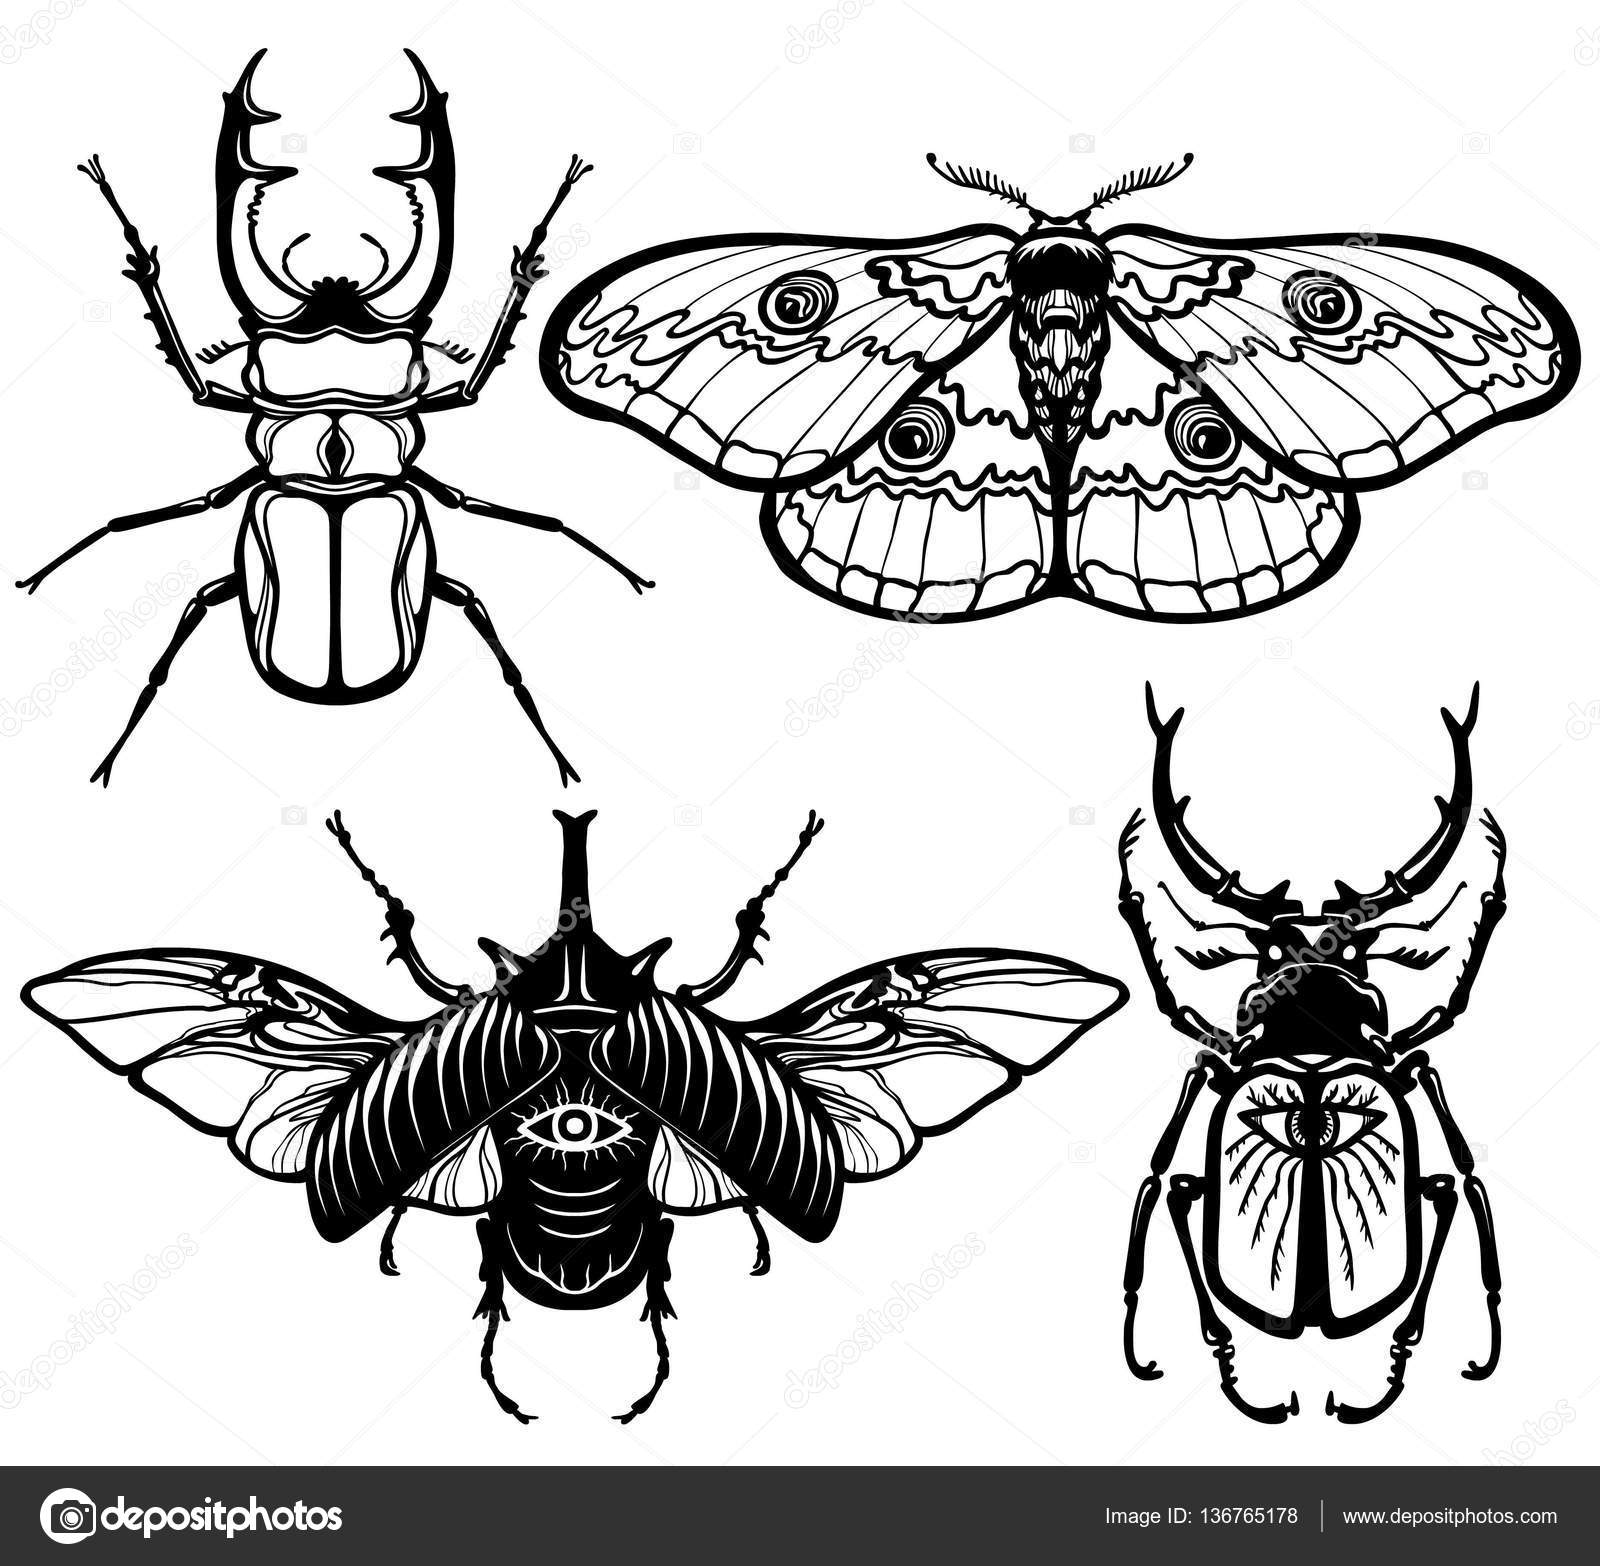 1600x1566 Collection Of Images Of Insects Bugs And Moth. The Linear Drawing